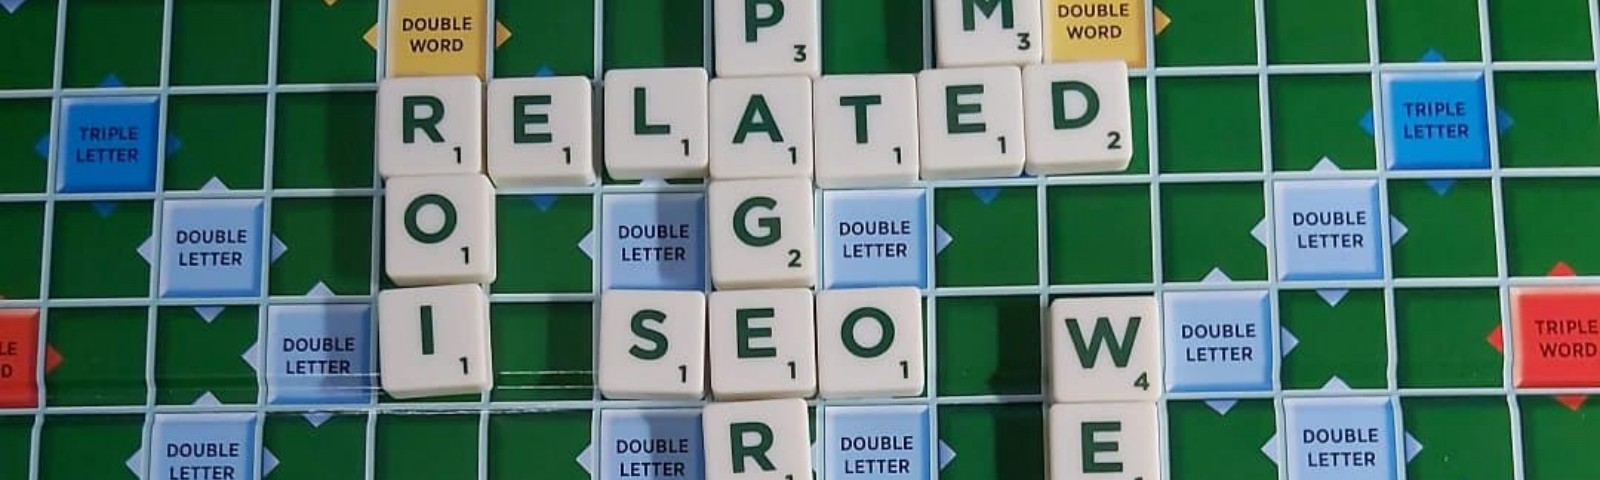 A Scrabble board with SEO-related words spelled out there.